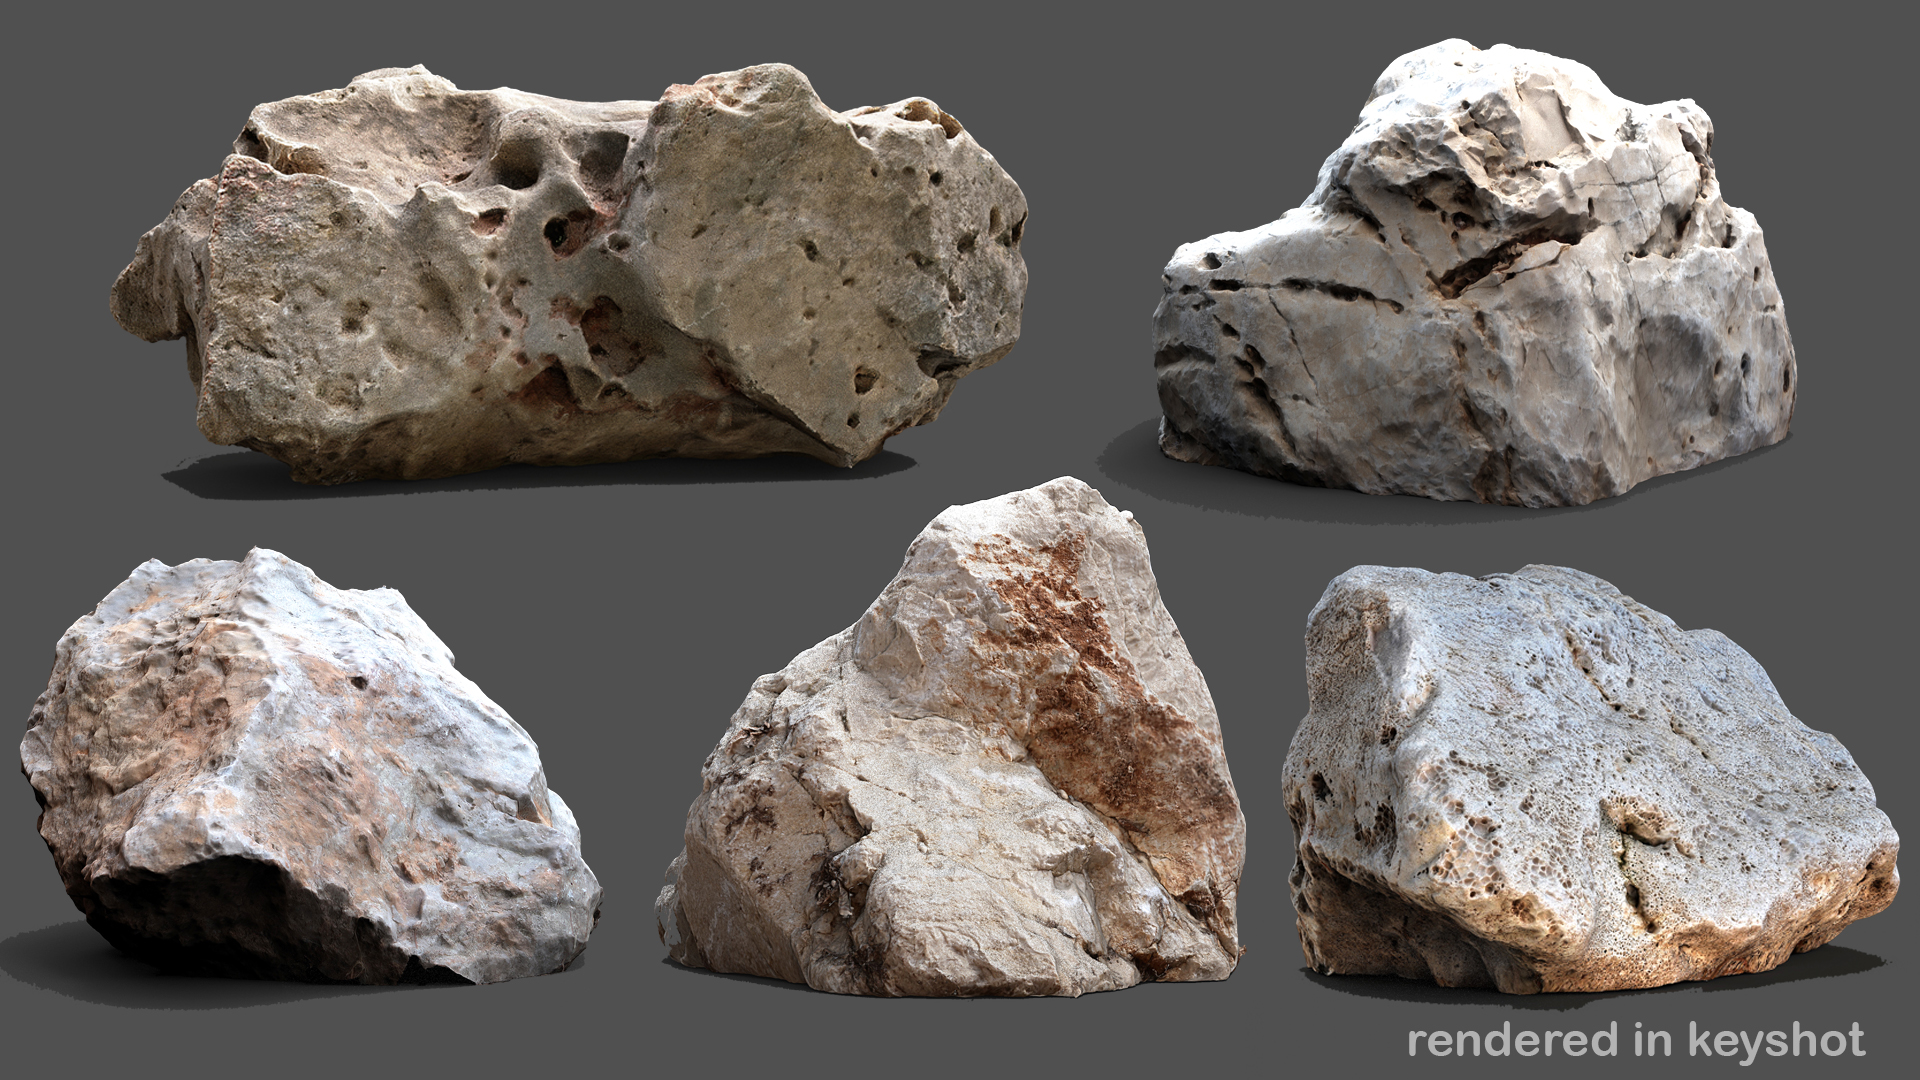 Stones and Rocks pack by ArtCloud in Environments - UE4